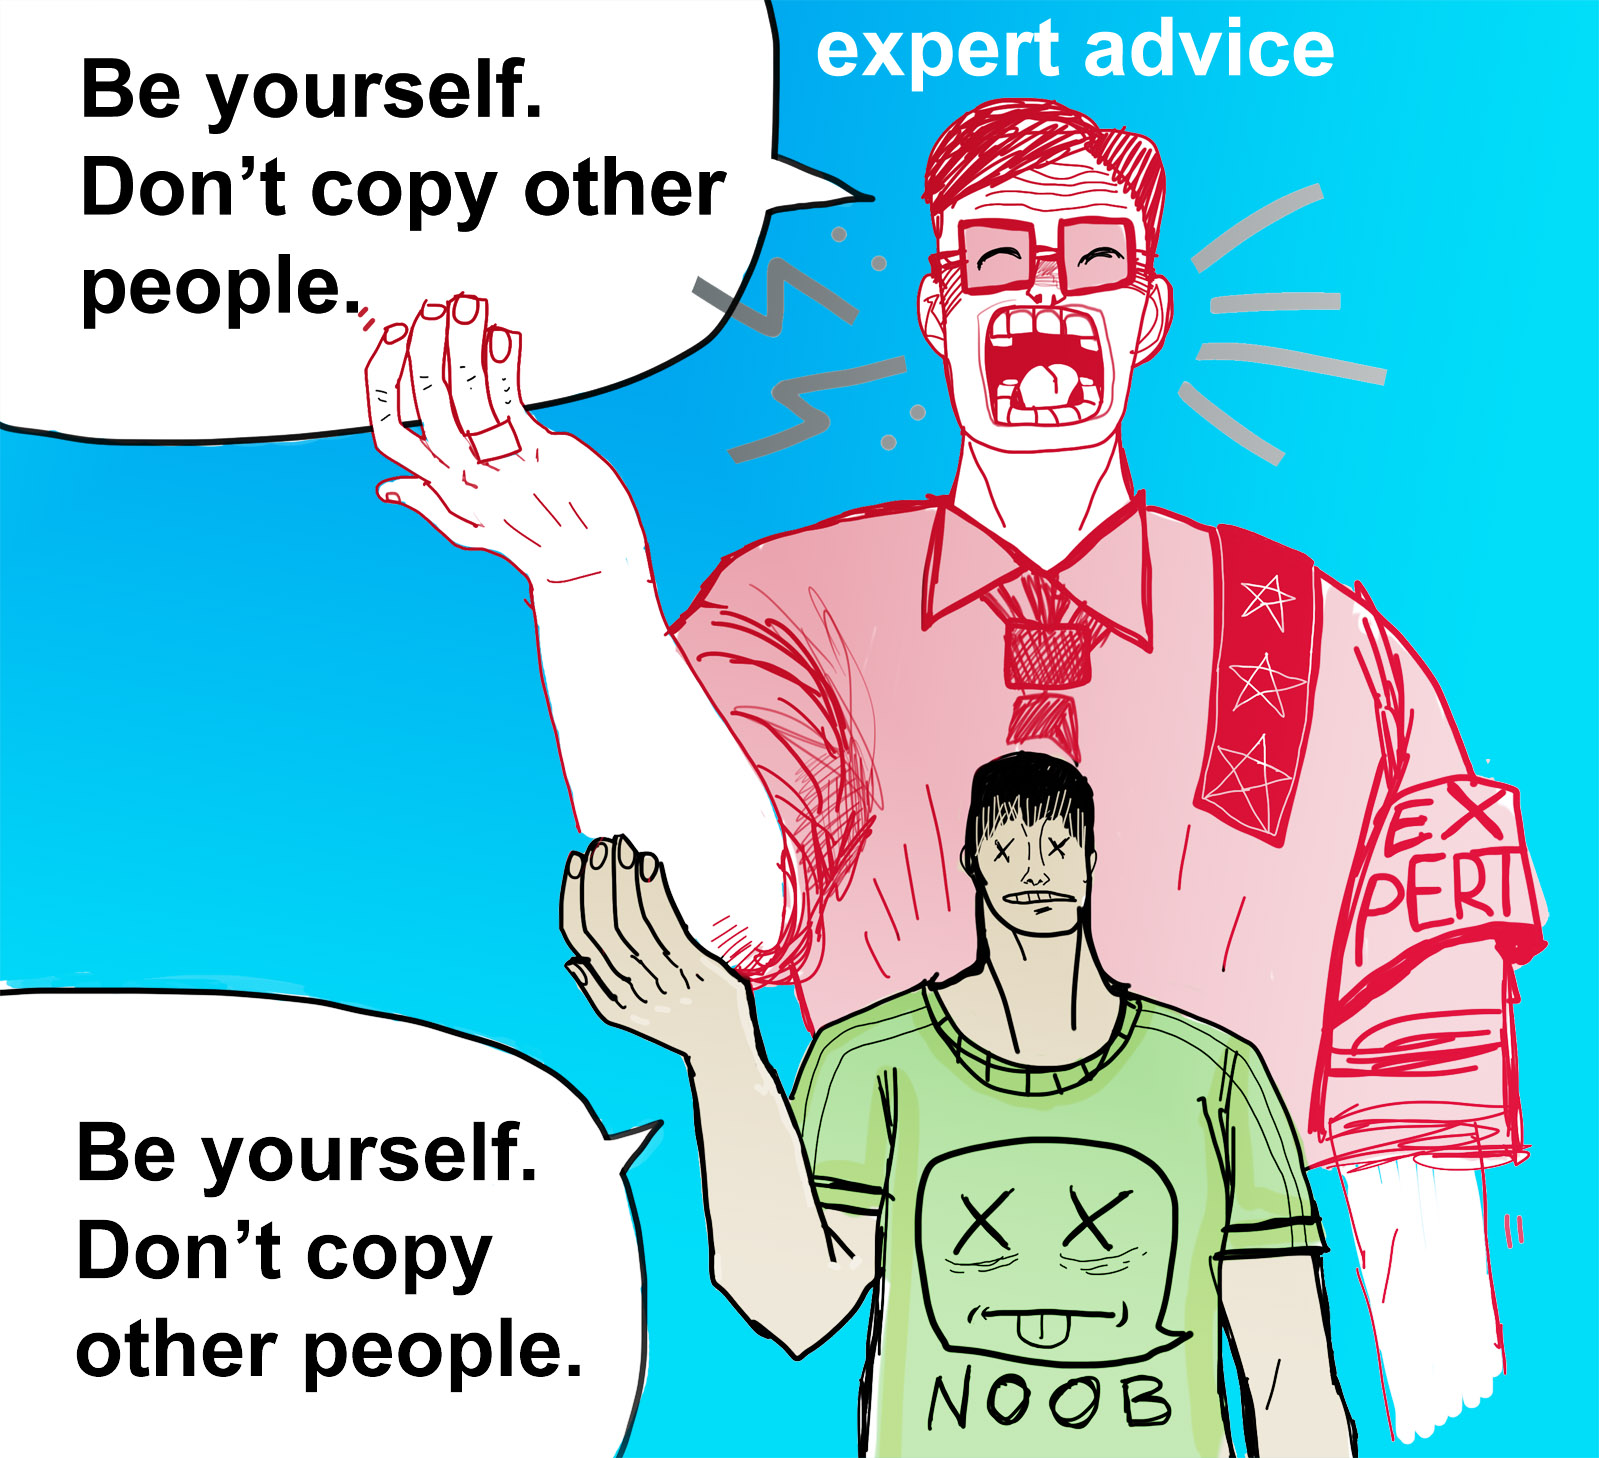 common_advice